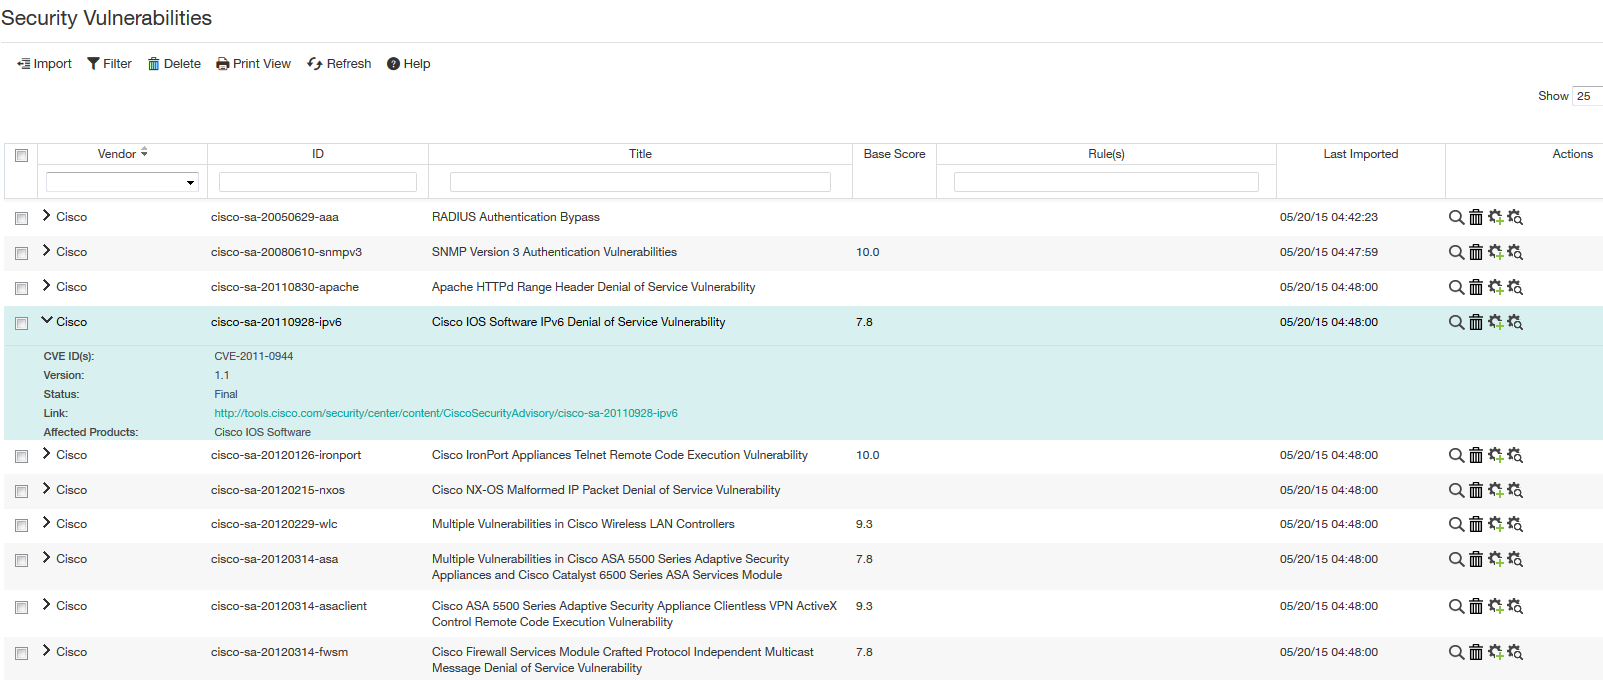 Viewing the security vulnerabilities listing and details